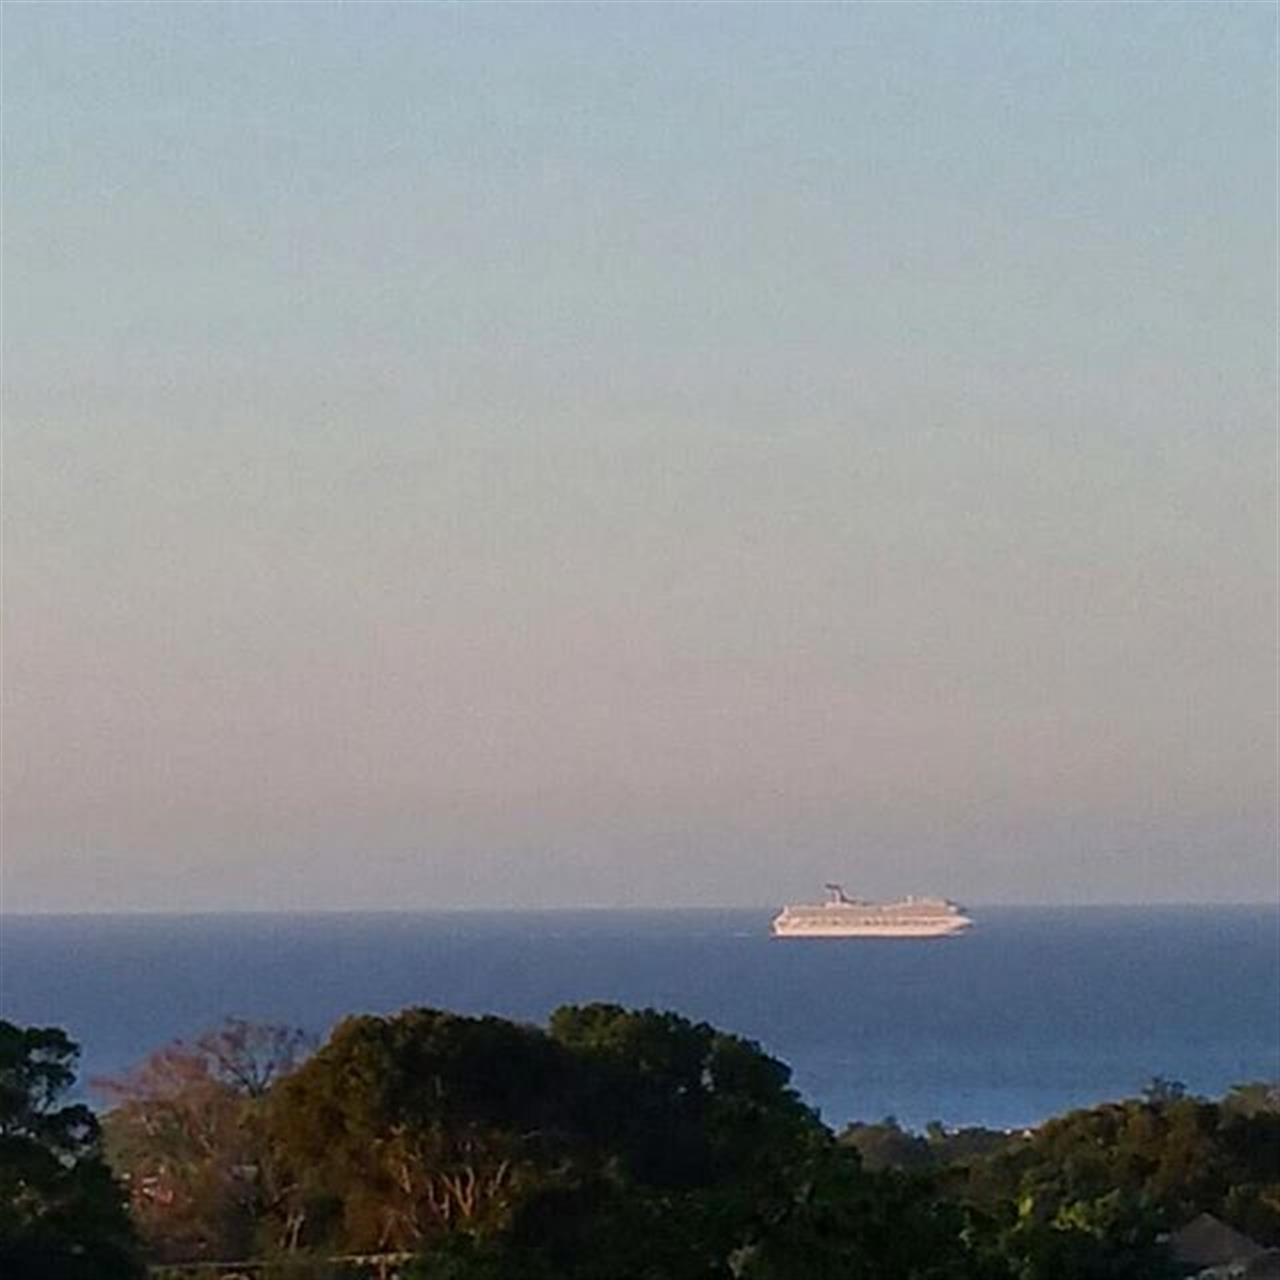 Cruise Ship visiting the Amber Cove in Puerto Plata. #DominicanRepublic